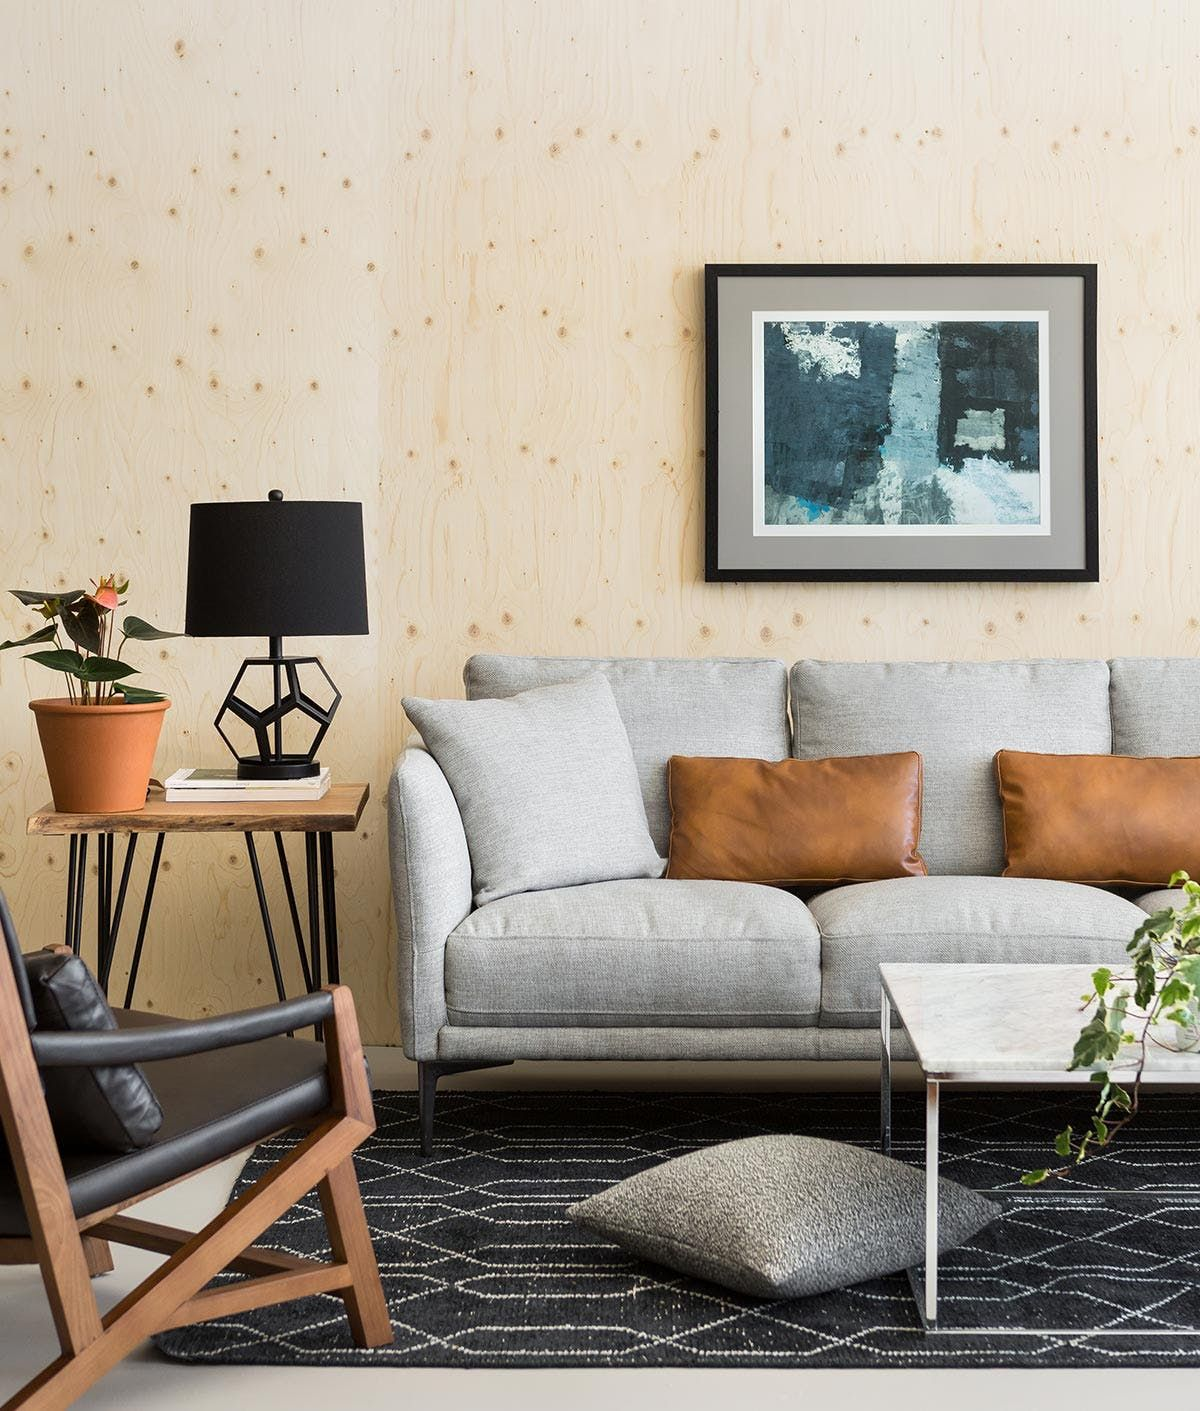 My Light And Airy Living Room Transformation: 5 Light And Airy Furniture Pieces For A Year-Round Summer